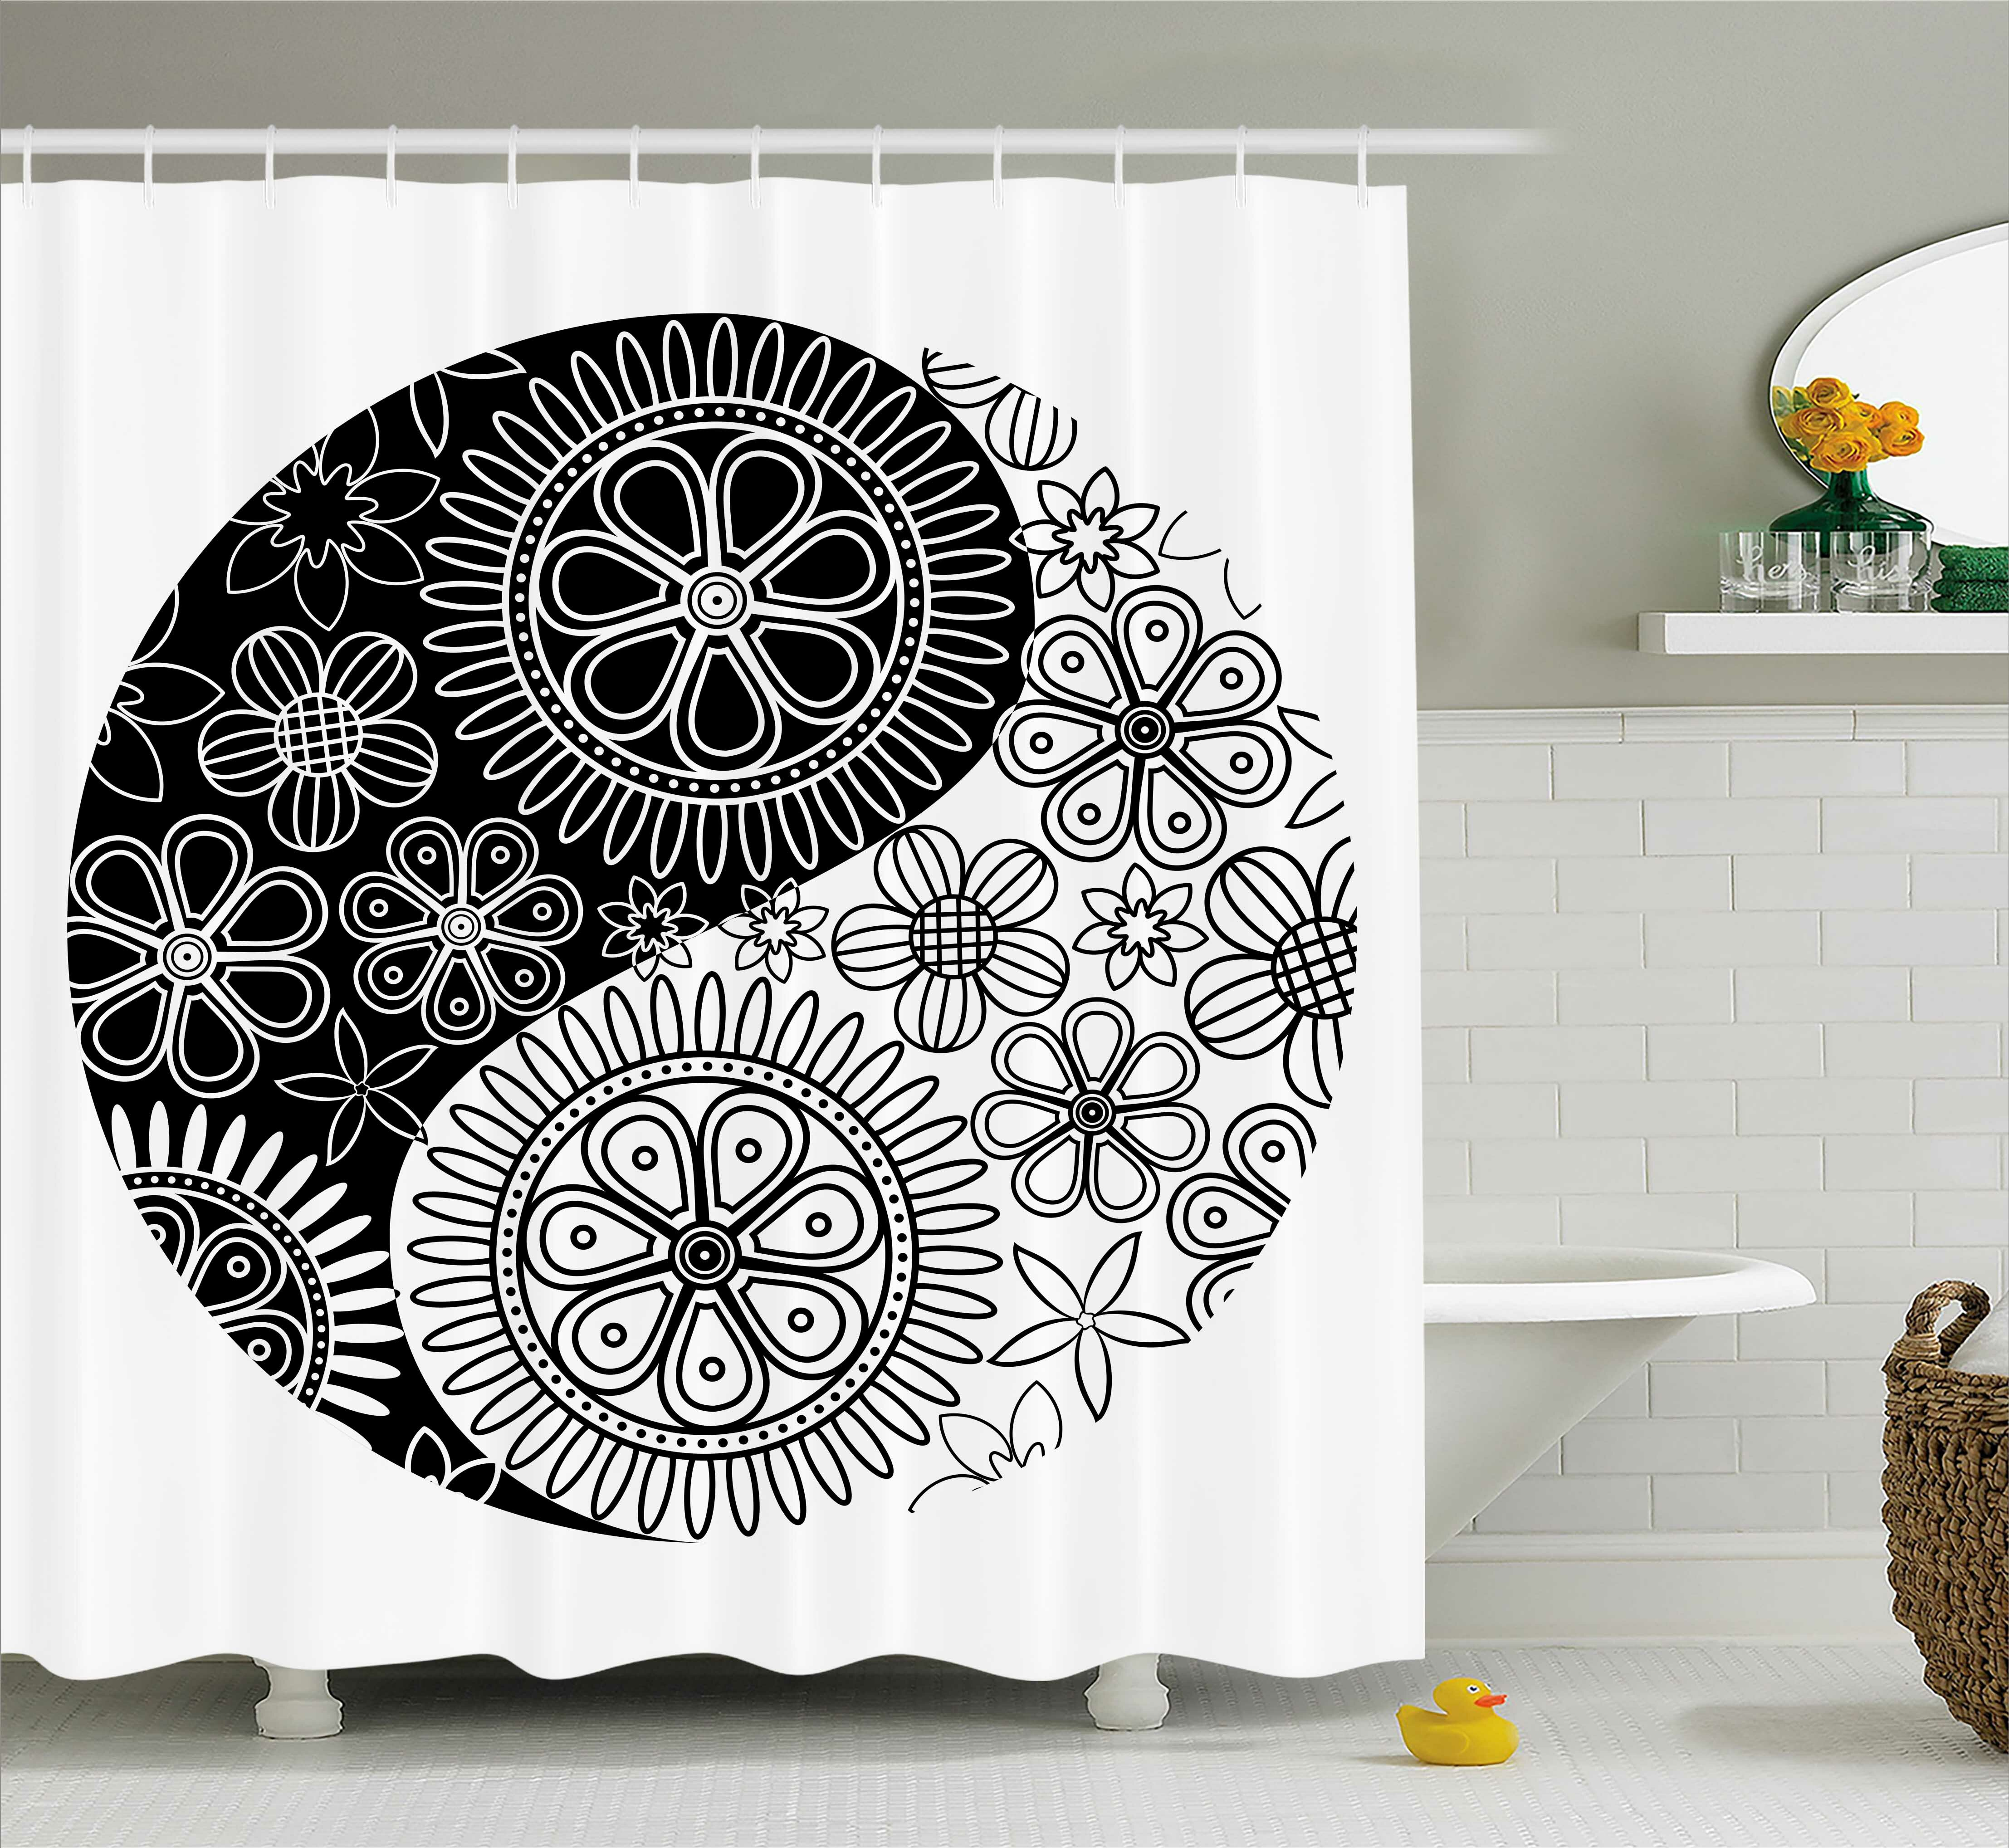 East Urban Home Black White Ying Yang Decor Floral Balance Single Shower Curtain Wayfair